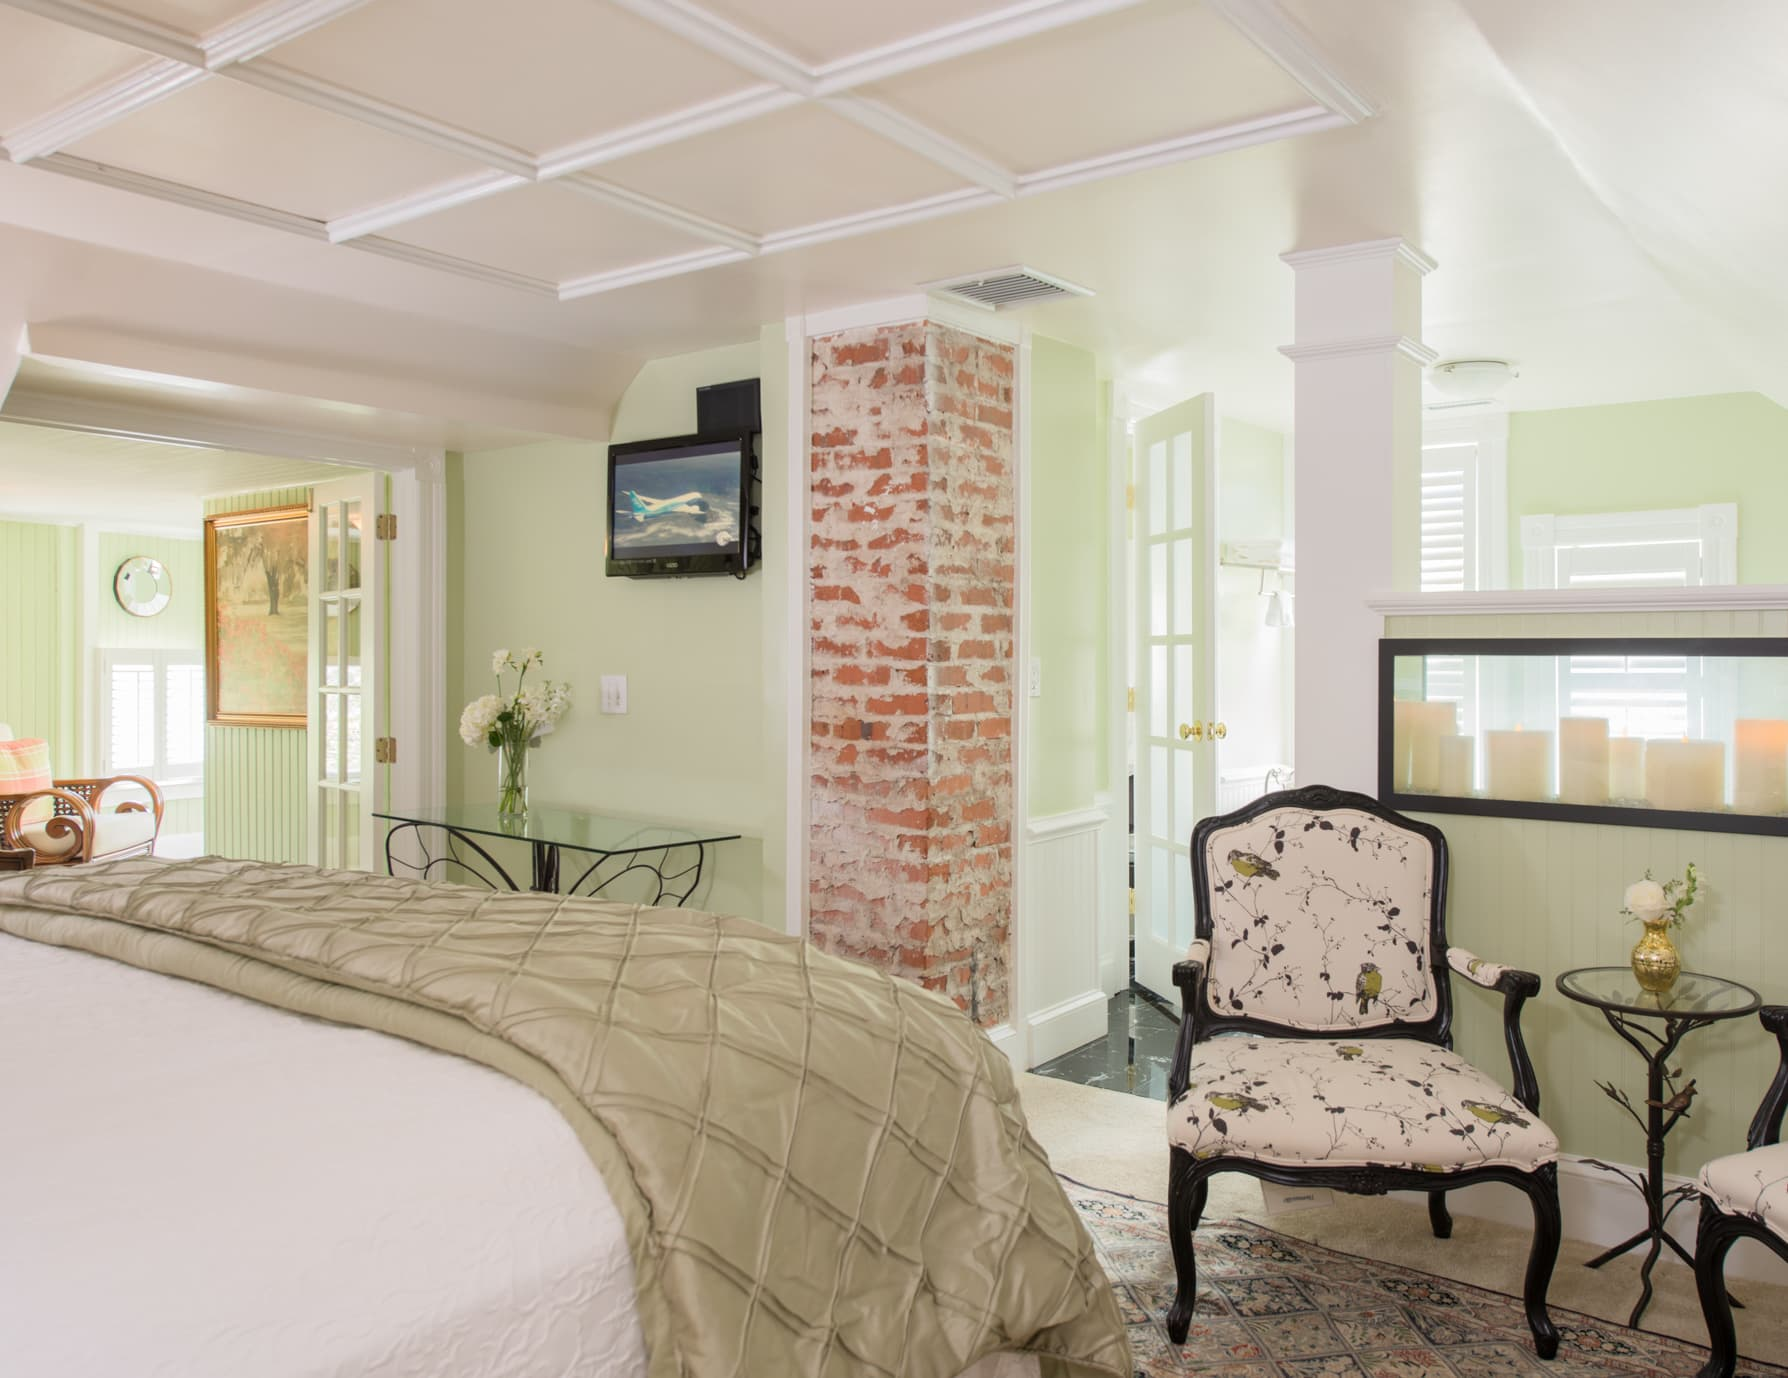 Manteo NC Lodging Features King Bed, Separate Sitting Area and Private Bath